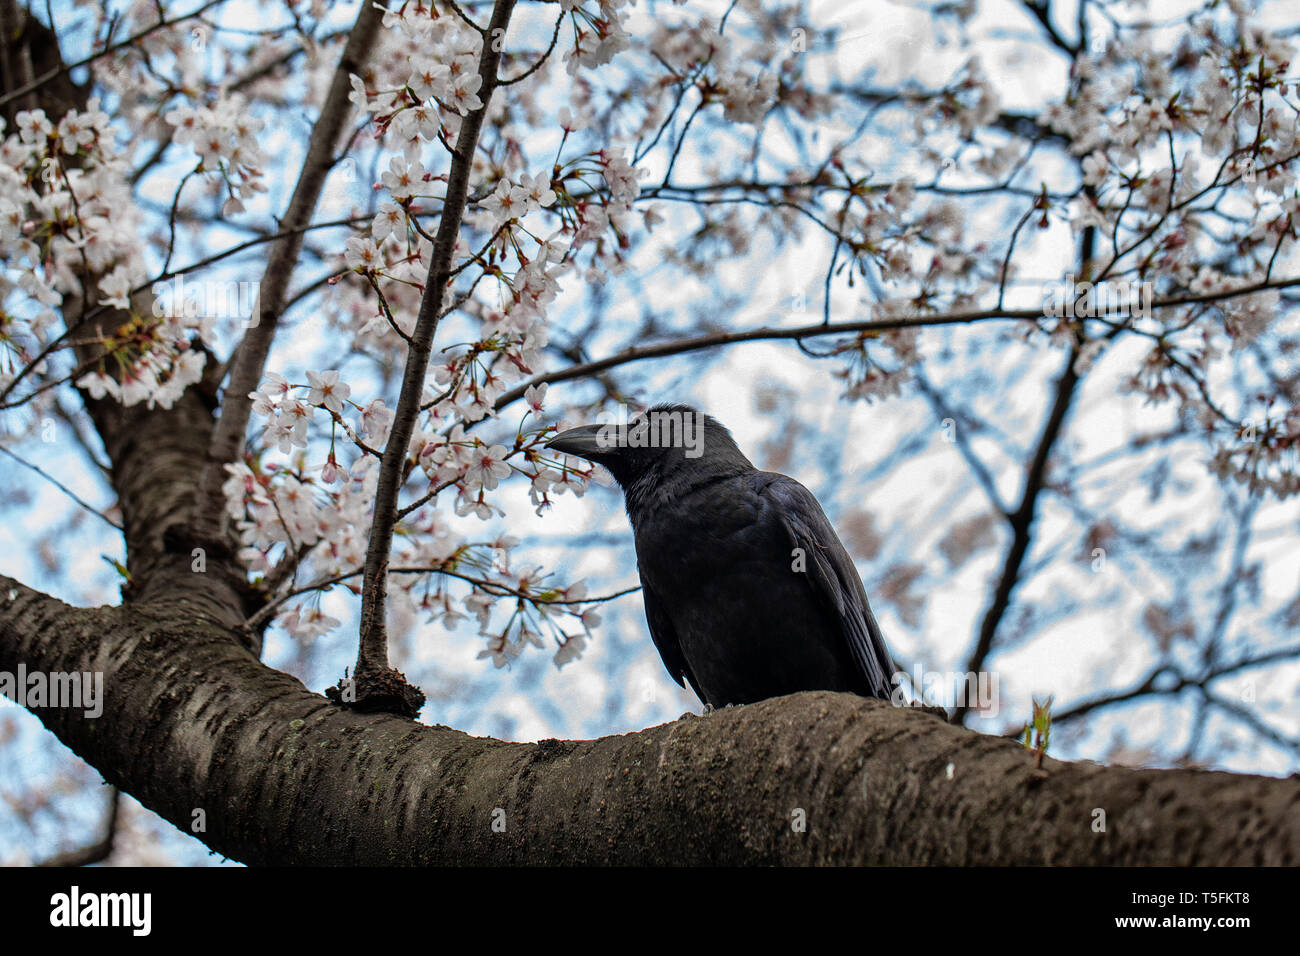 Black Crow raven sitting on the branch of a cherry blossom tree with white and pink blooms behind Stock Photo